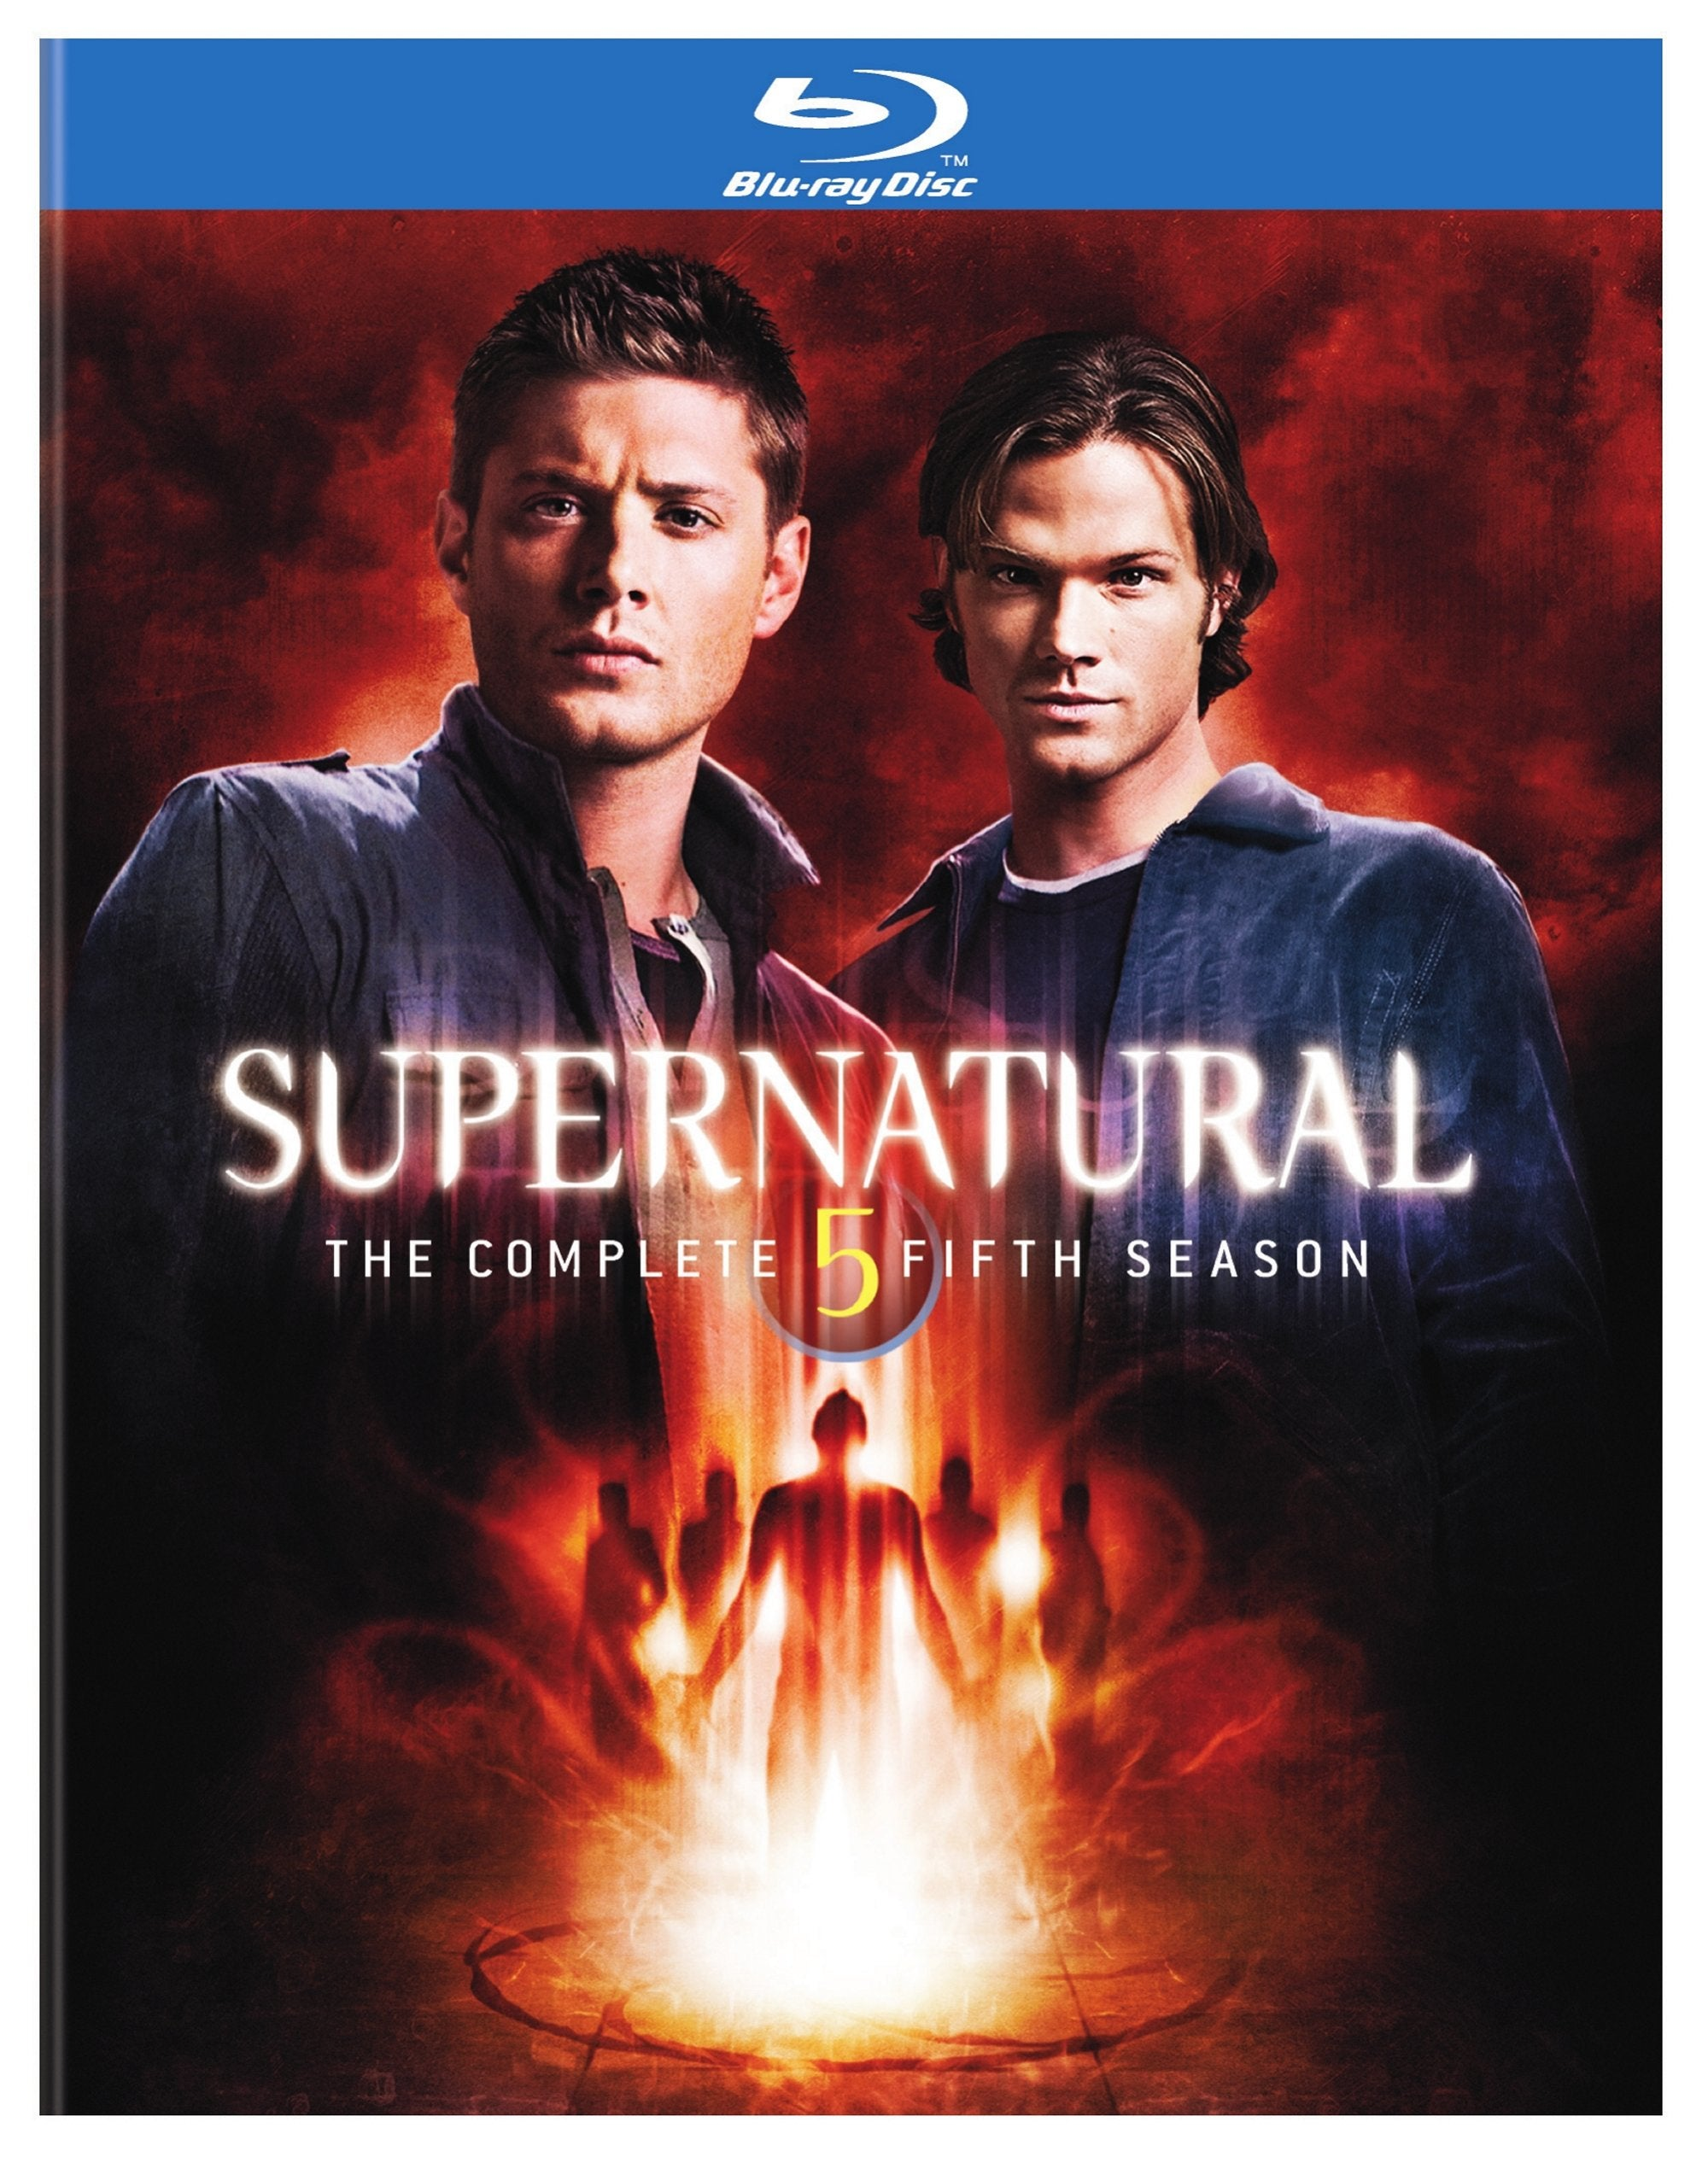 Supernatural: The Complete Fifth Season (Blu-ray Disc)